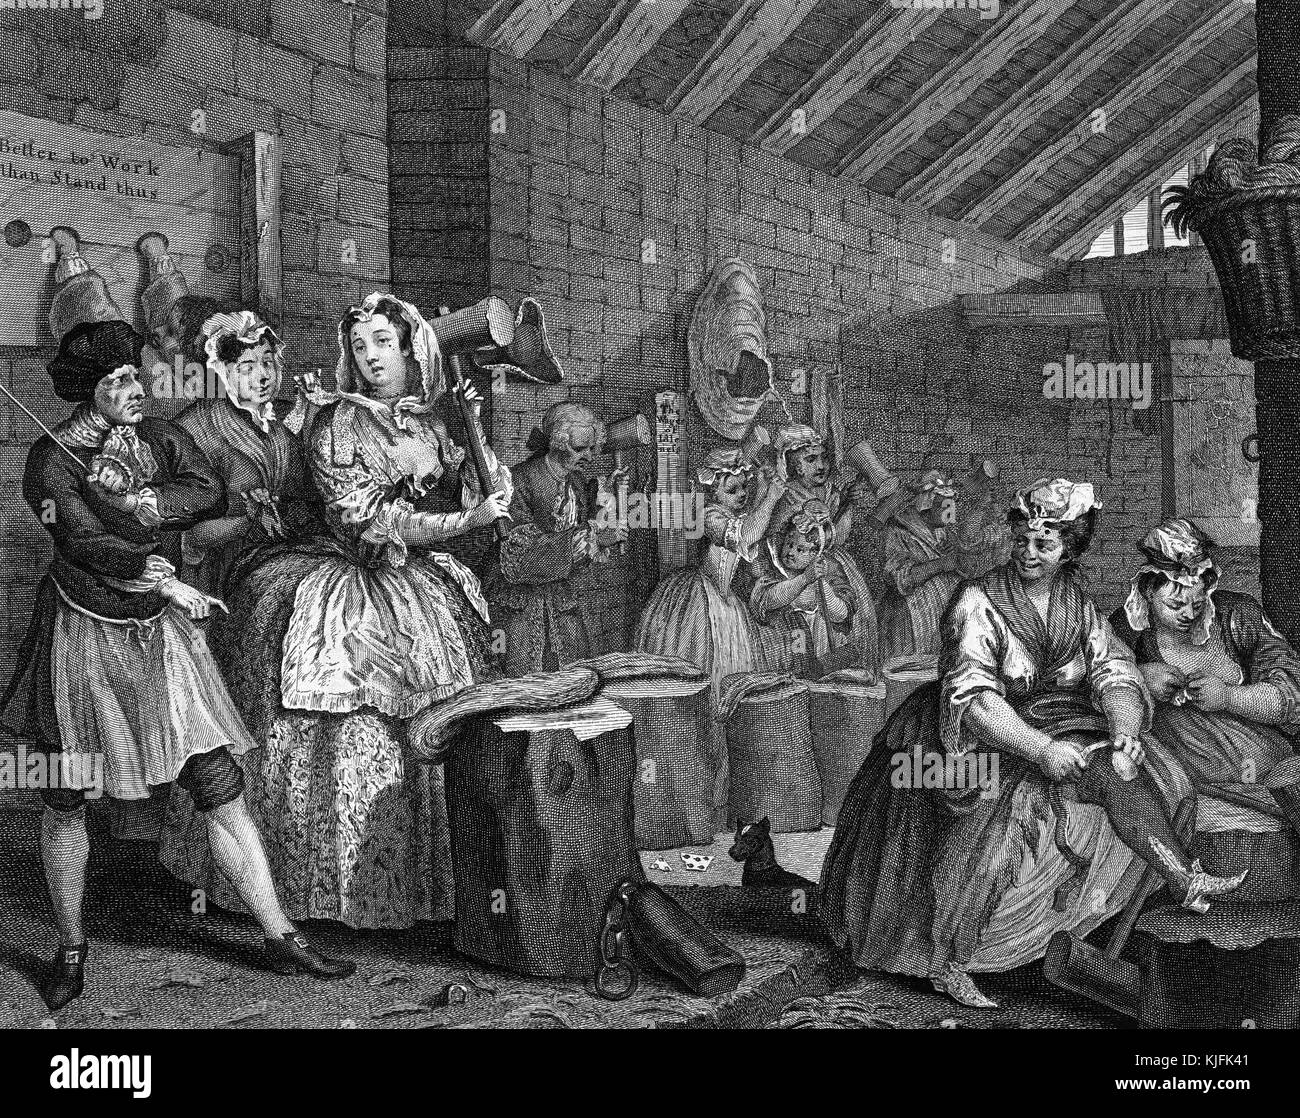 Engraving on paper, titled 'A Harlot's Progress, Plate 4, Moll beats hemp in Bridewell Prison', she - Stock Image